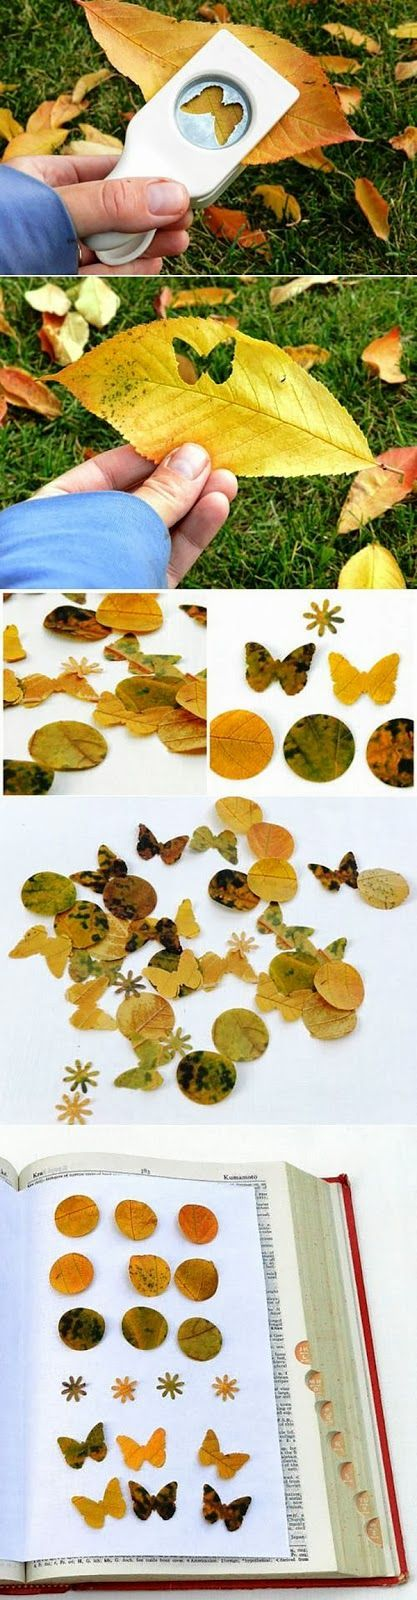 Punched Leaves - looks really cool and is easy to make too